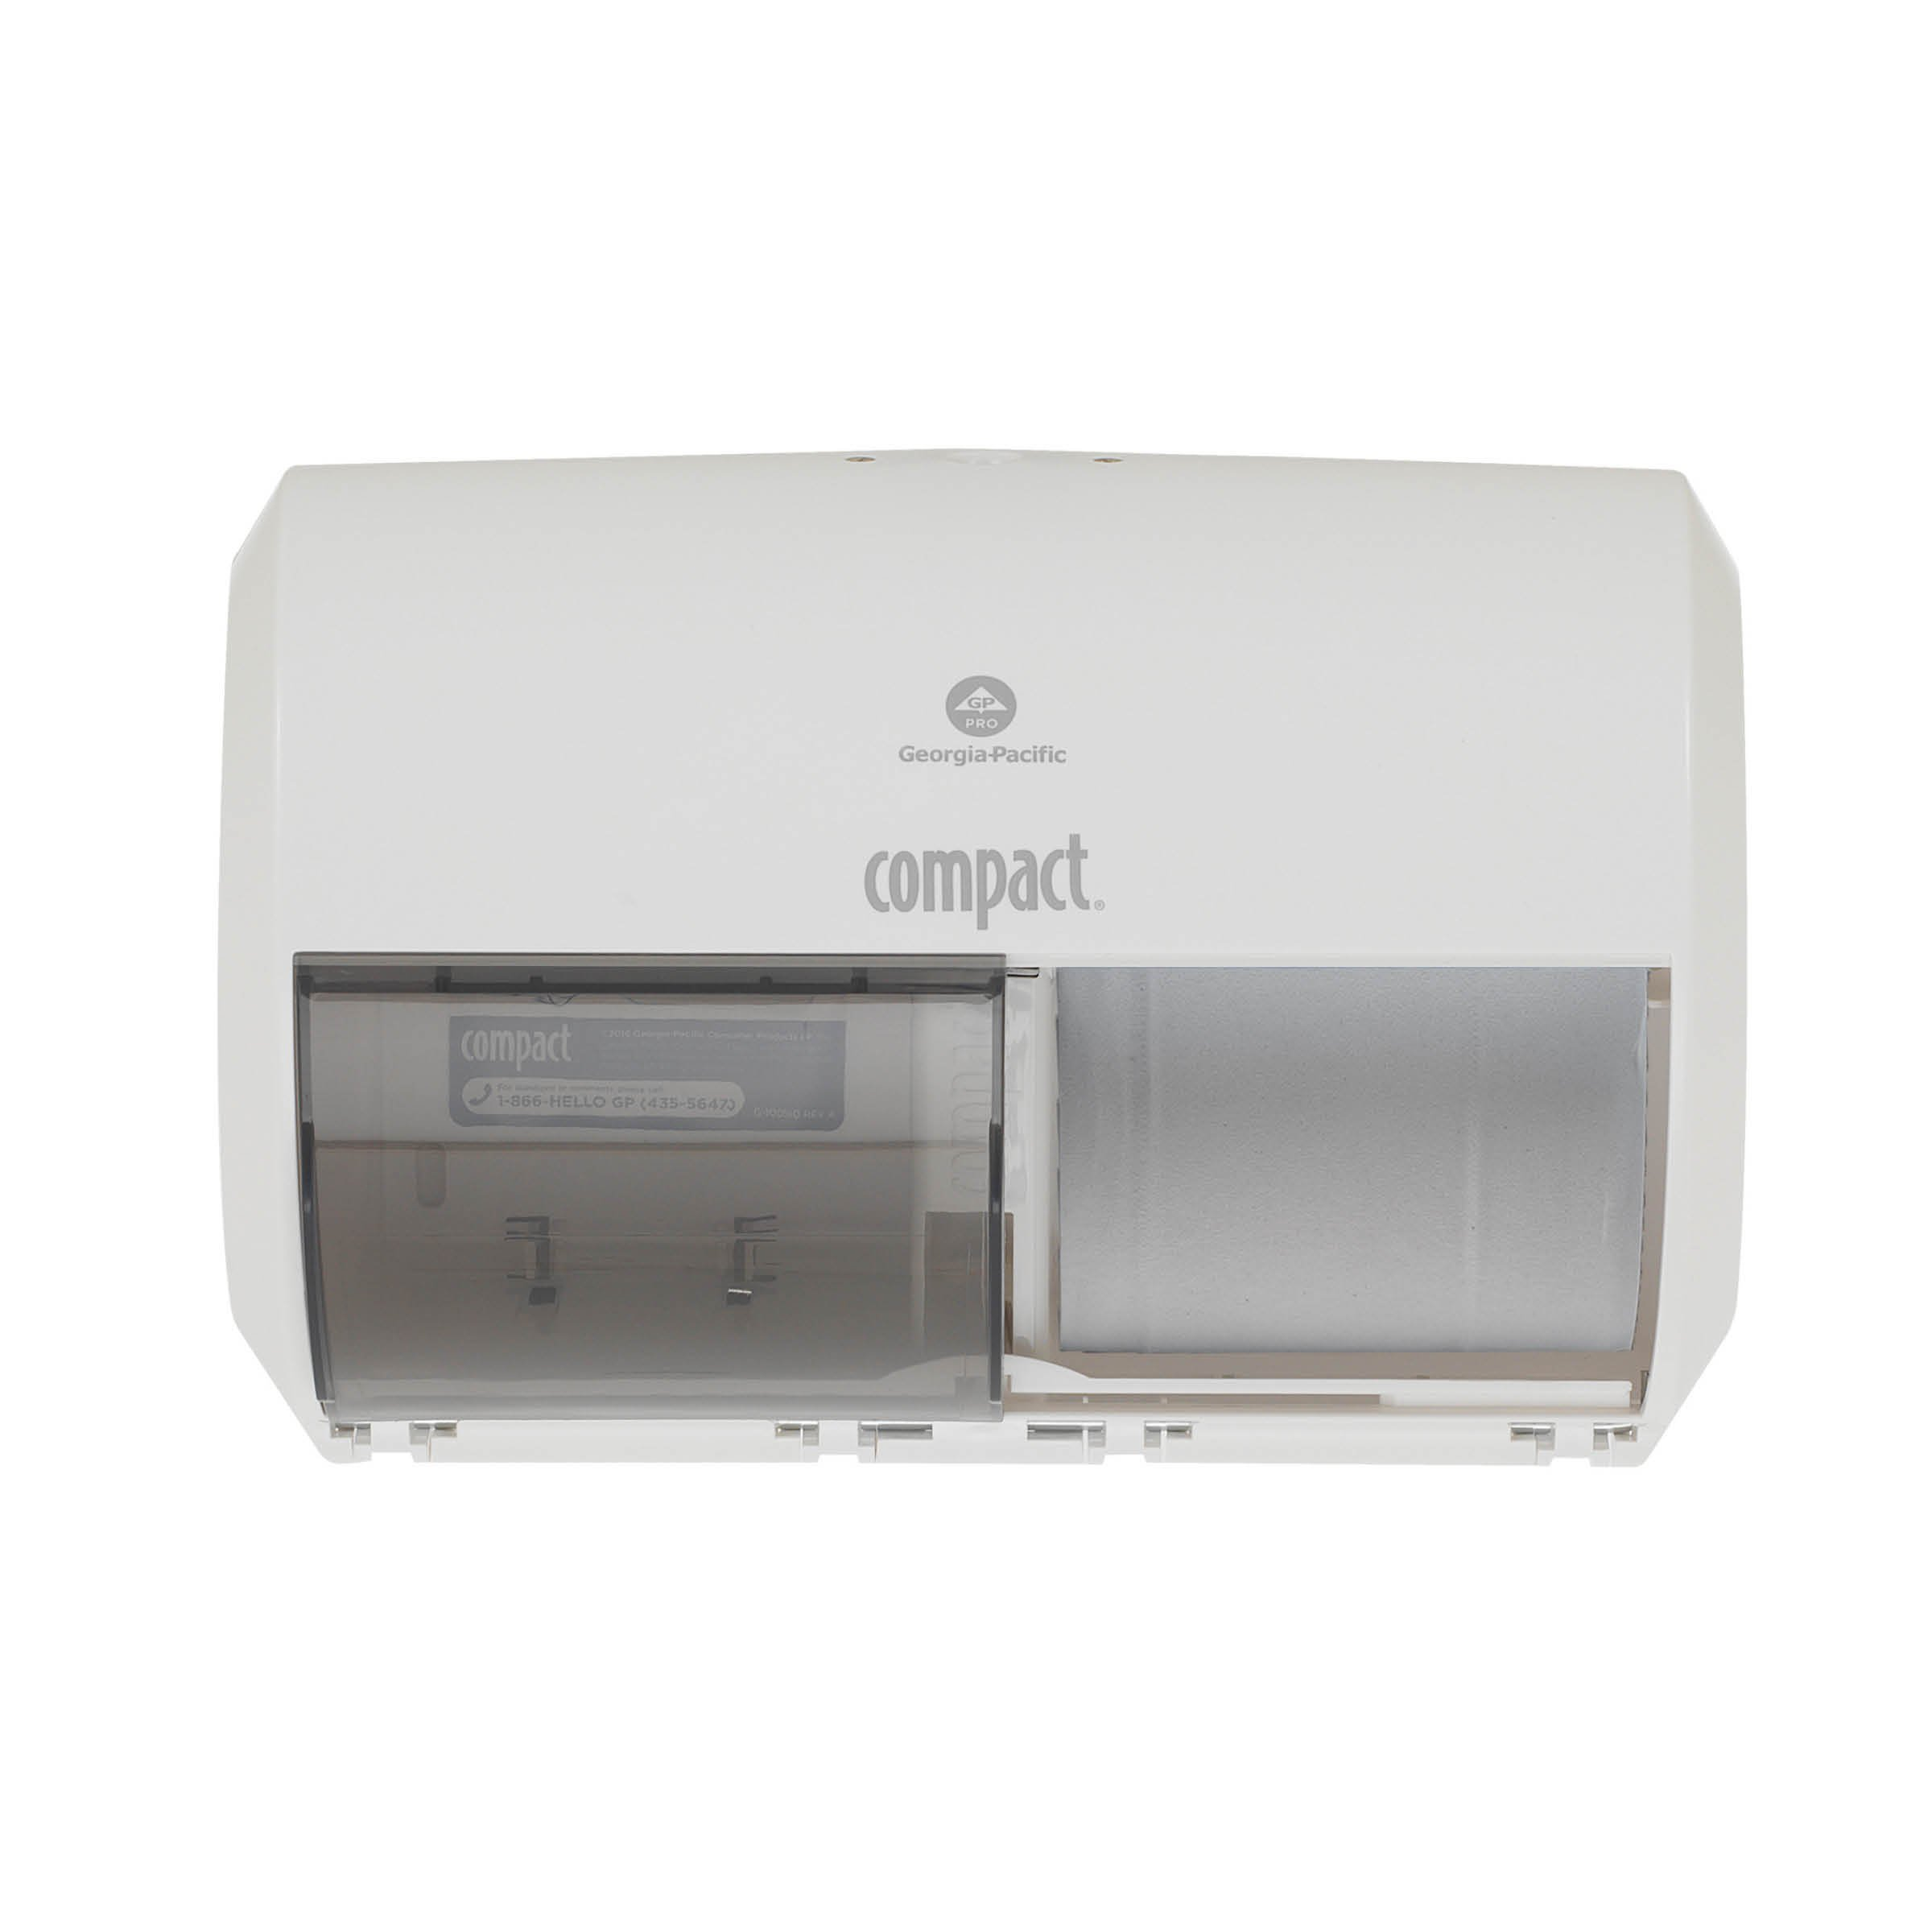 """Compact 2-Roll Side-by-Side Coreless High-Capacity Toilet Paper Dispenser by GP PRO (Georgia-Pacific), White, 56797A, 10.120"""" W x 6.750"""" D x 7.120"""" H"""